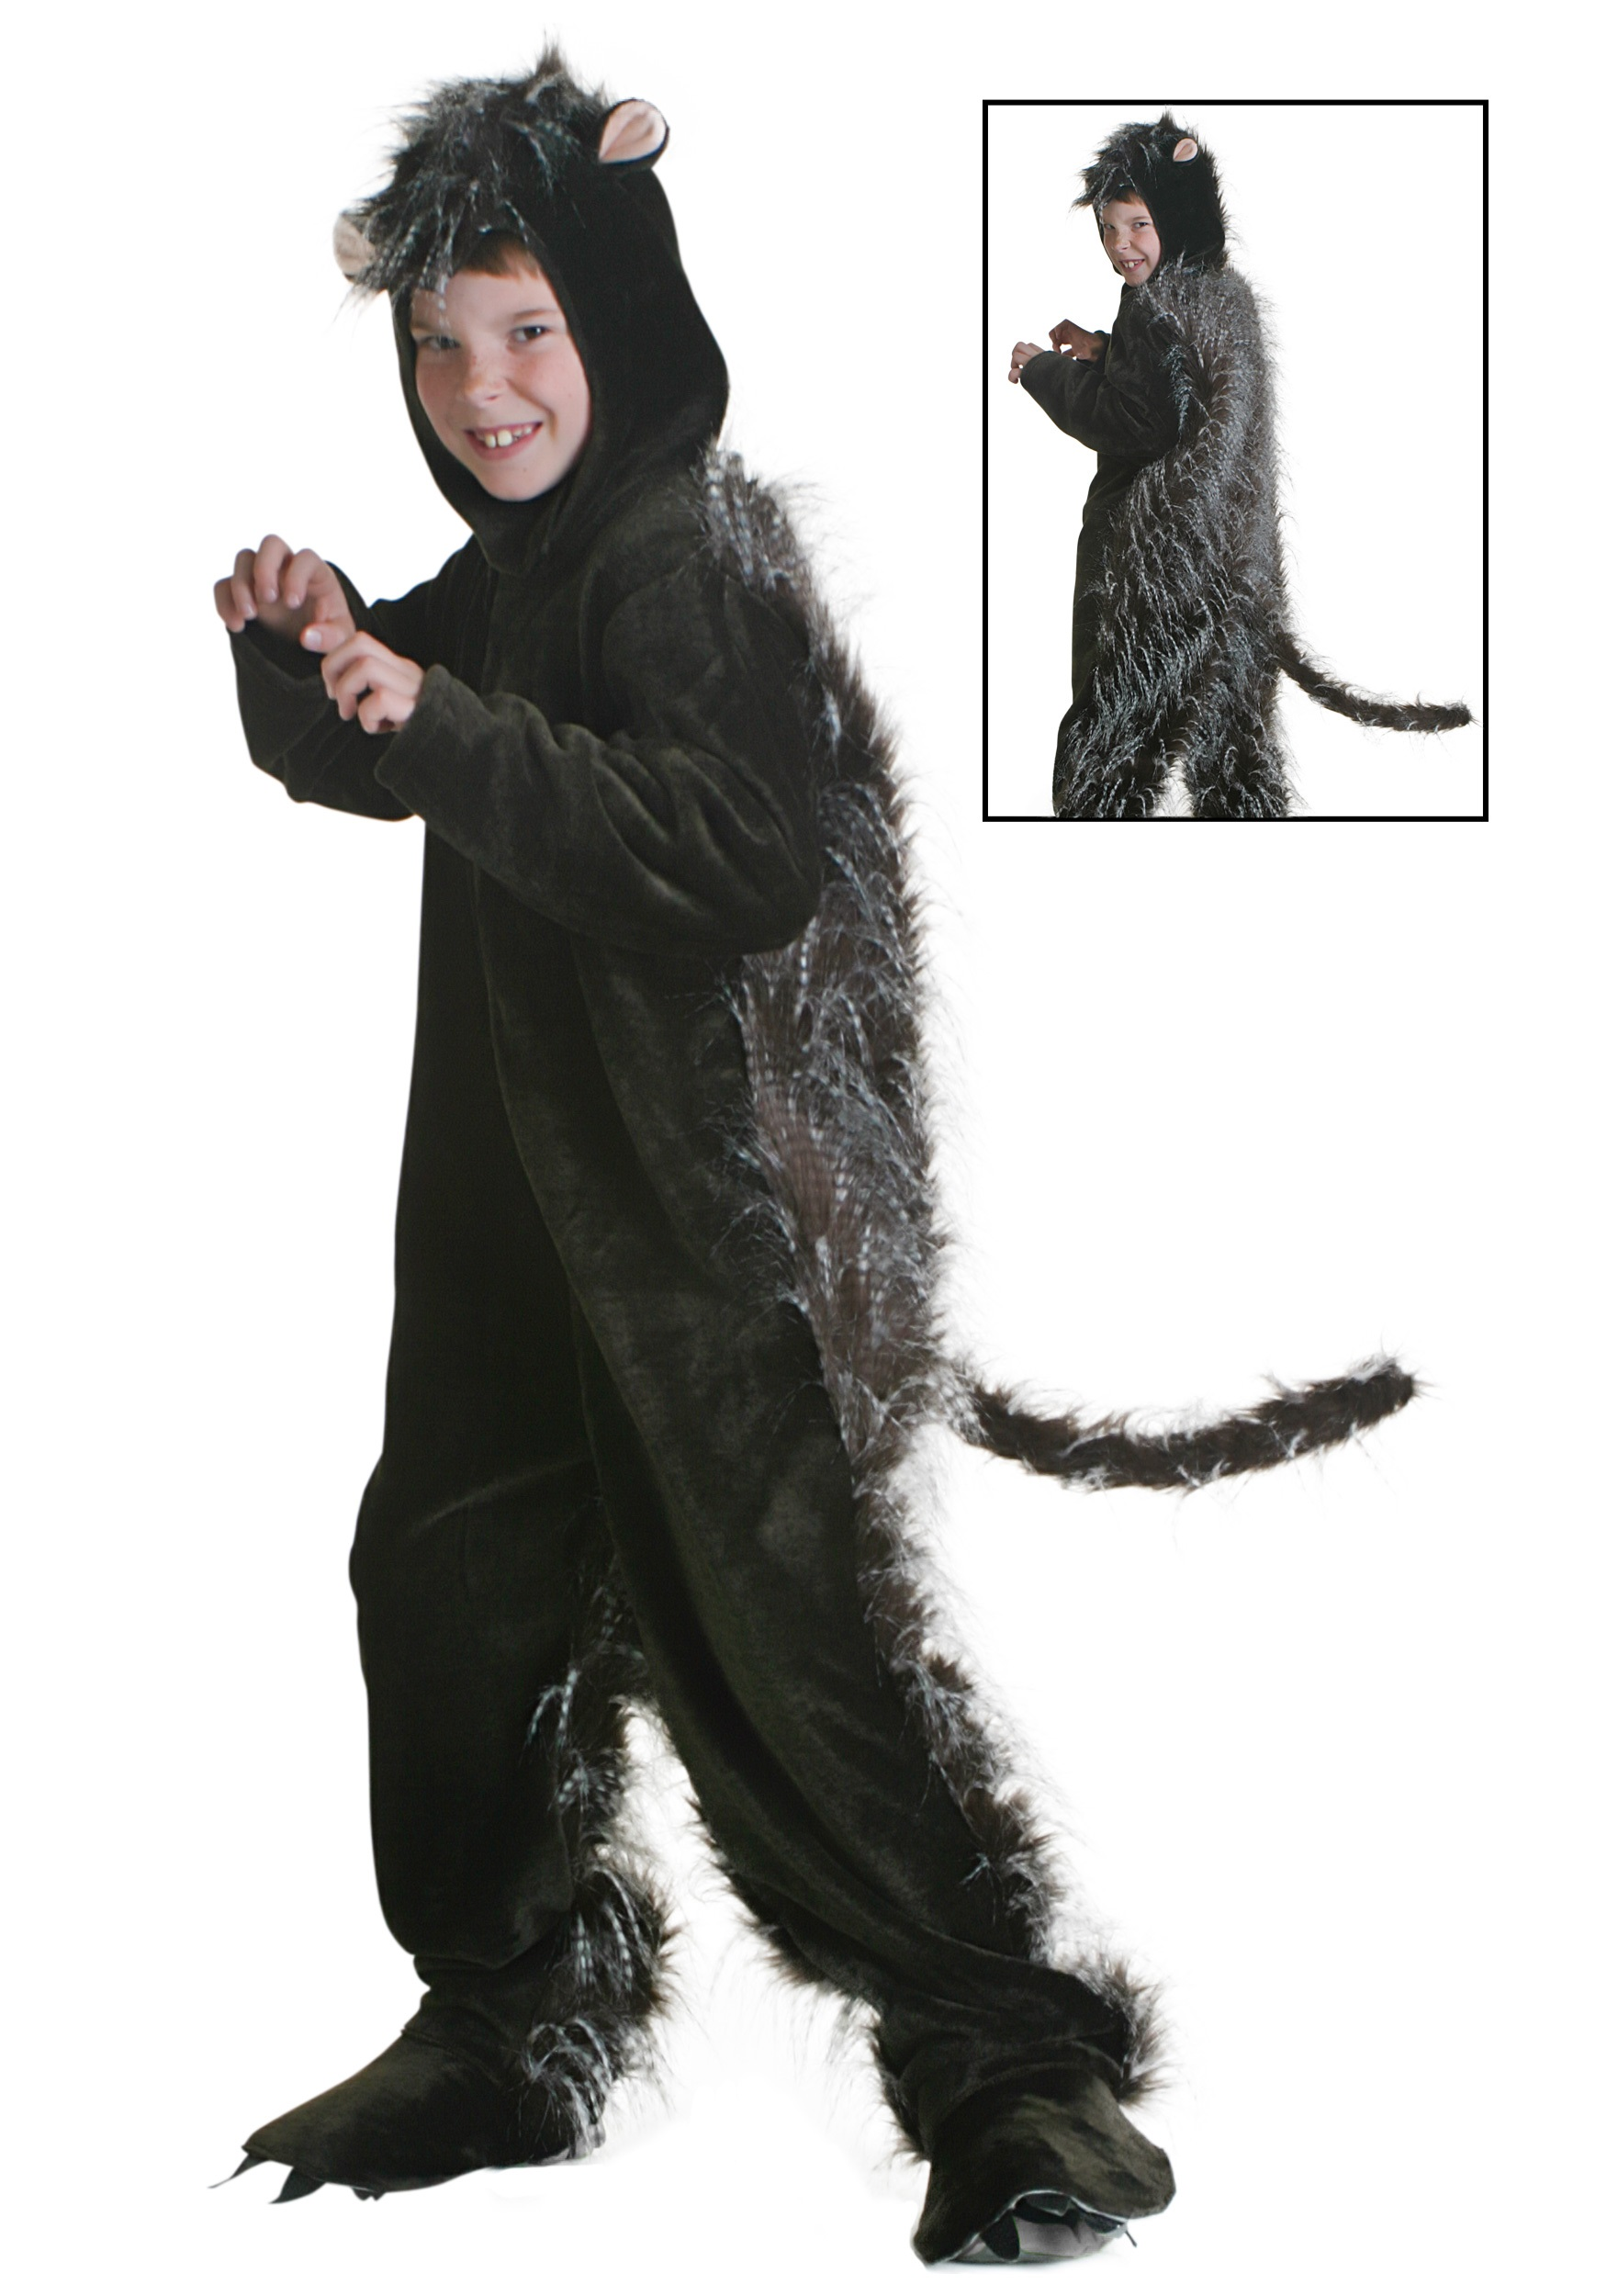 Child Porcupine Costume  sc 1 st  Halloween Costumes & Child Porcupine Costume - Halloween Costumes